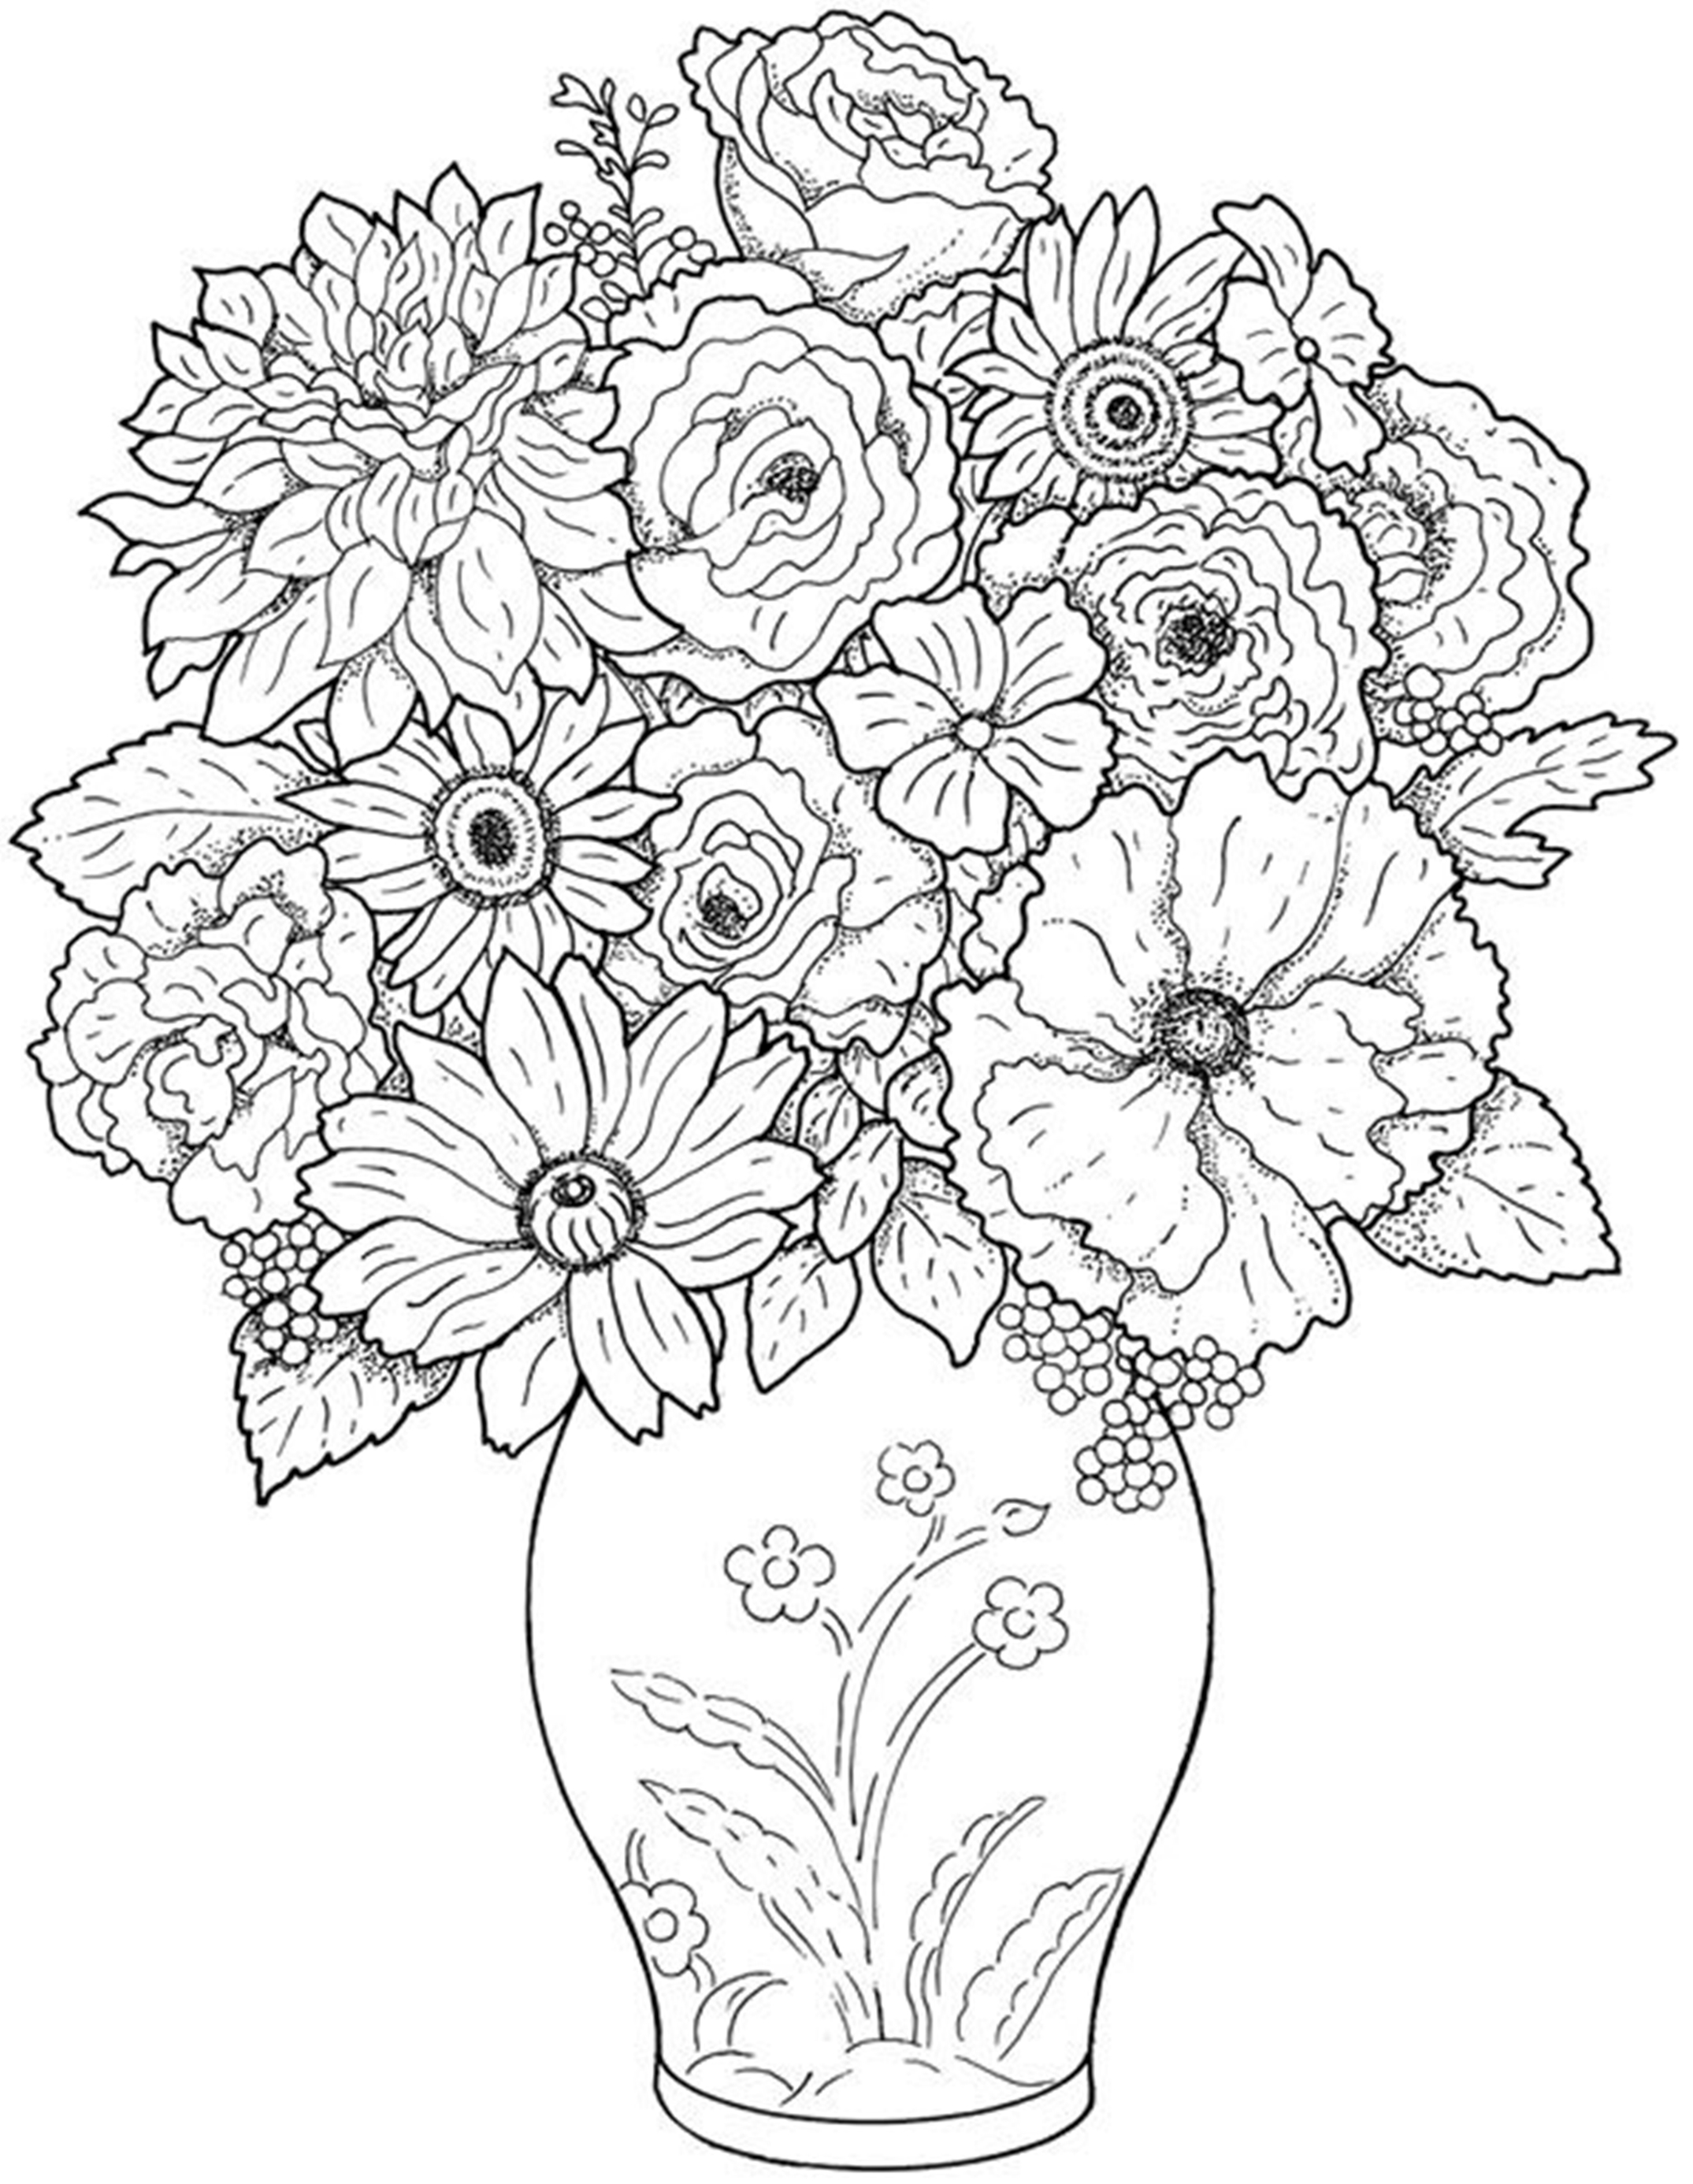 colouring pictures of plants free printable flower coloring pages for kids best of plants colouring pictures